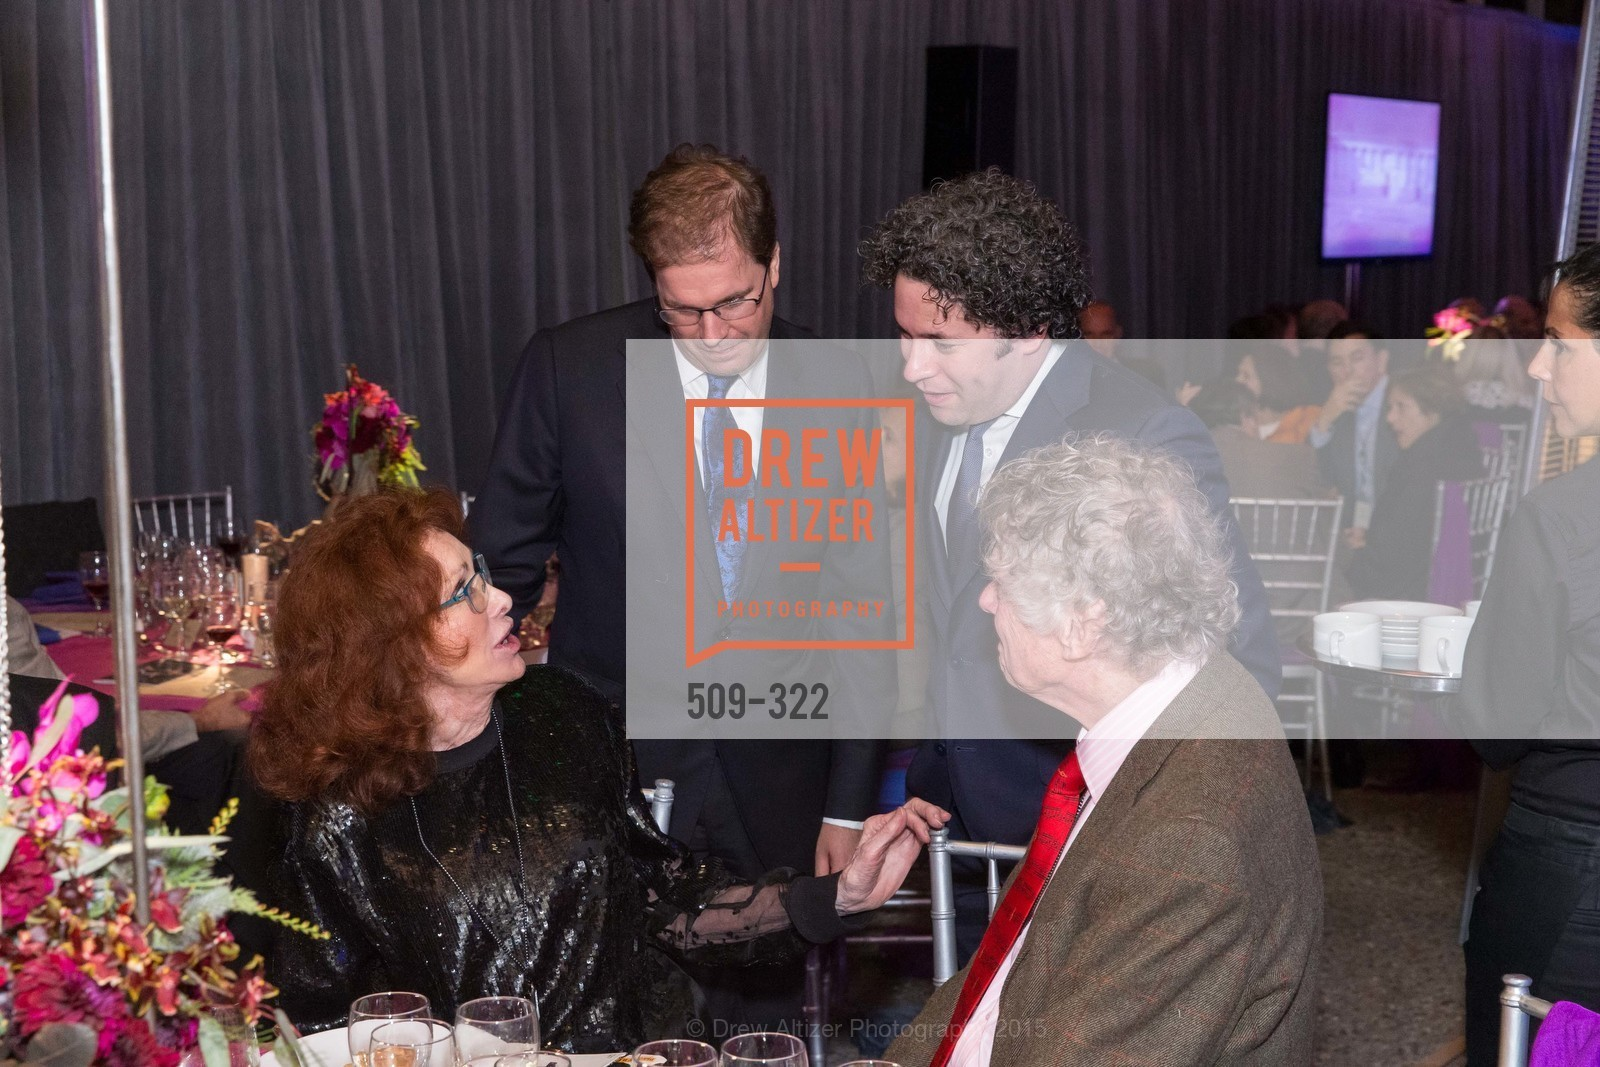 Ann Getty, Matias Tarnopolsky, Gustavo Dudamel, Gordon Getty, Gala at The Greek Benefiting Cal Performances, UC Berkeley's Greek Theatre. 2001 Gayley Rd, September 25th, 2015,Drew Altizer, Drew Altizer Photography, full-service agency, private events, San Francisco photographer, photographer california